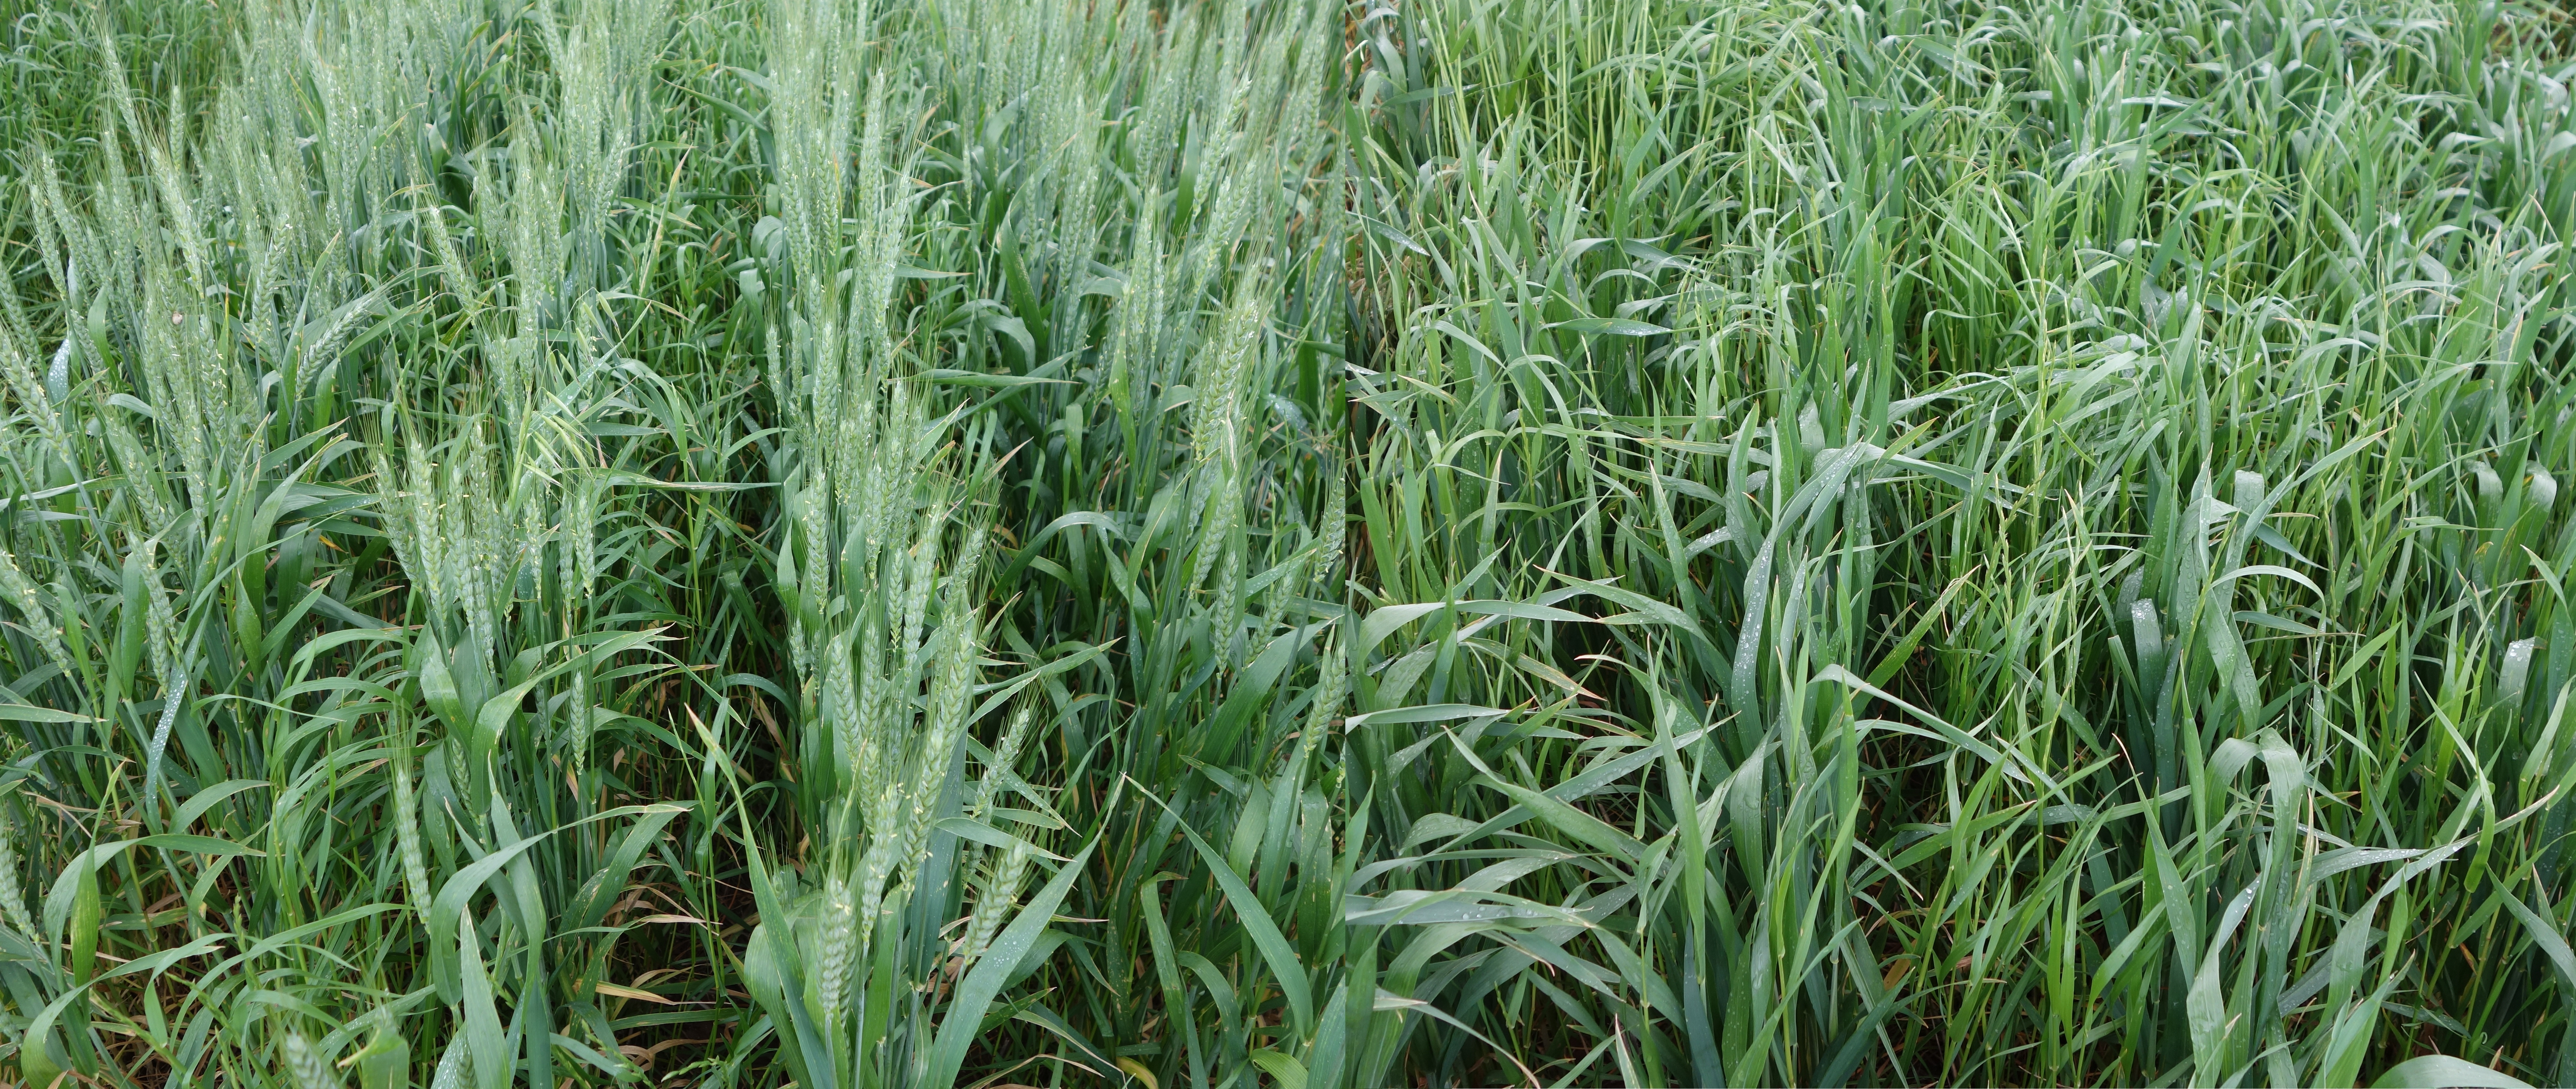 Early (left) v late sown cereals — ryegrass head count was lower in early sown crop.